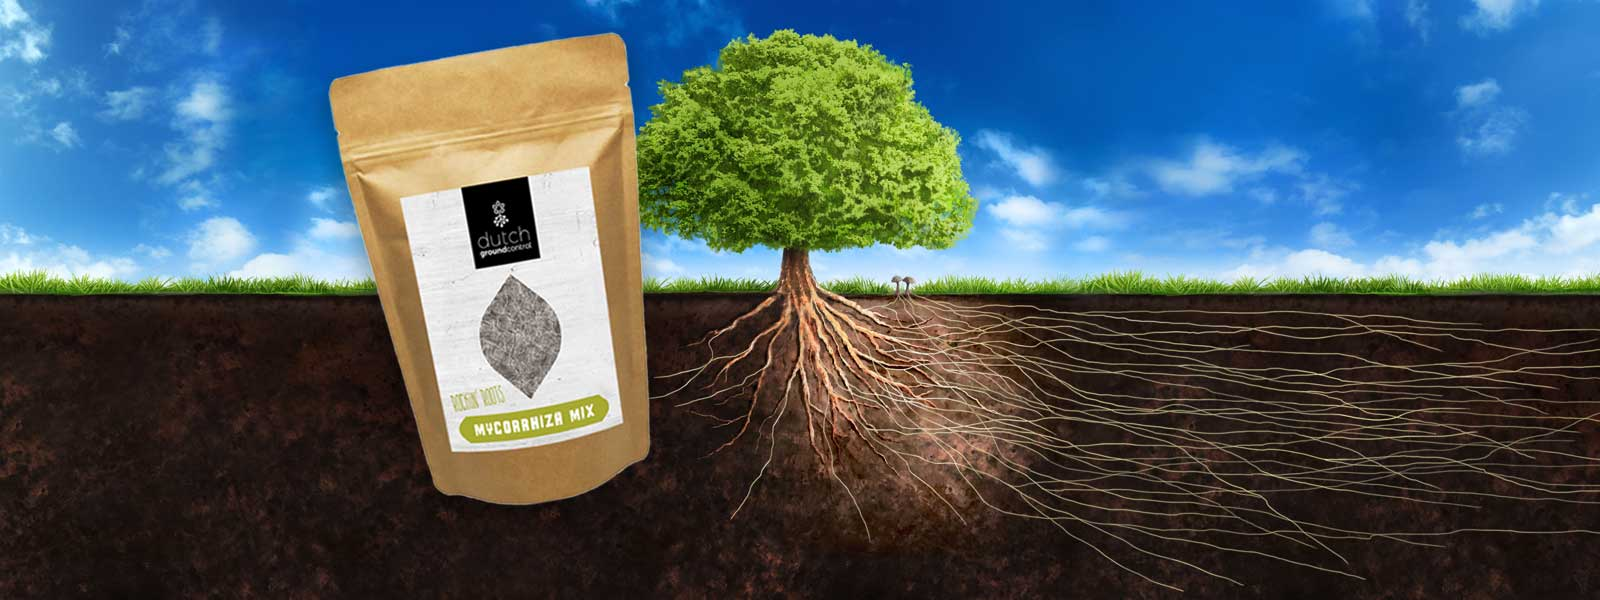 Marijuana Seeds Breeders Mycorrhiza Mix